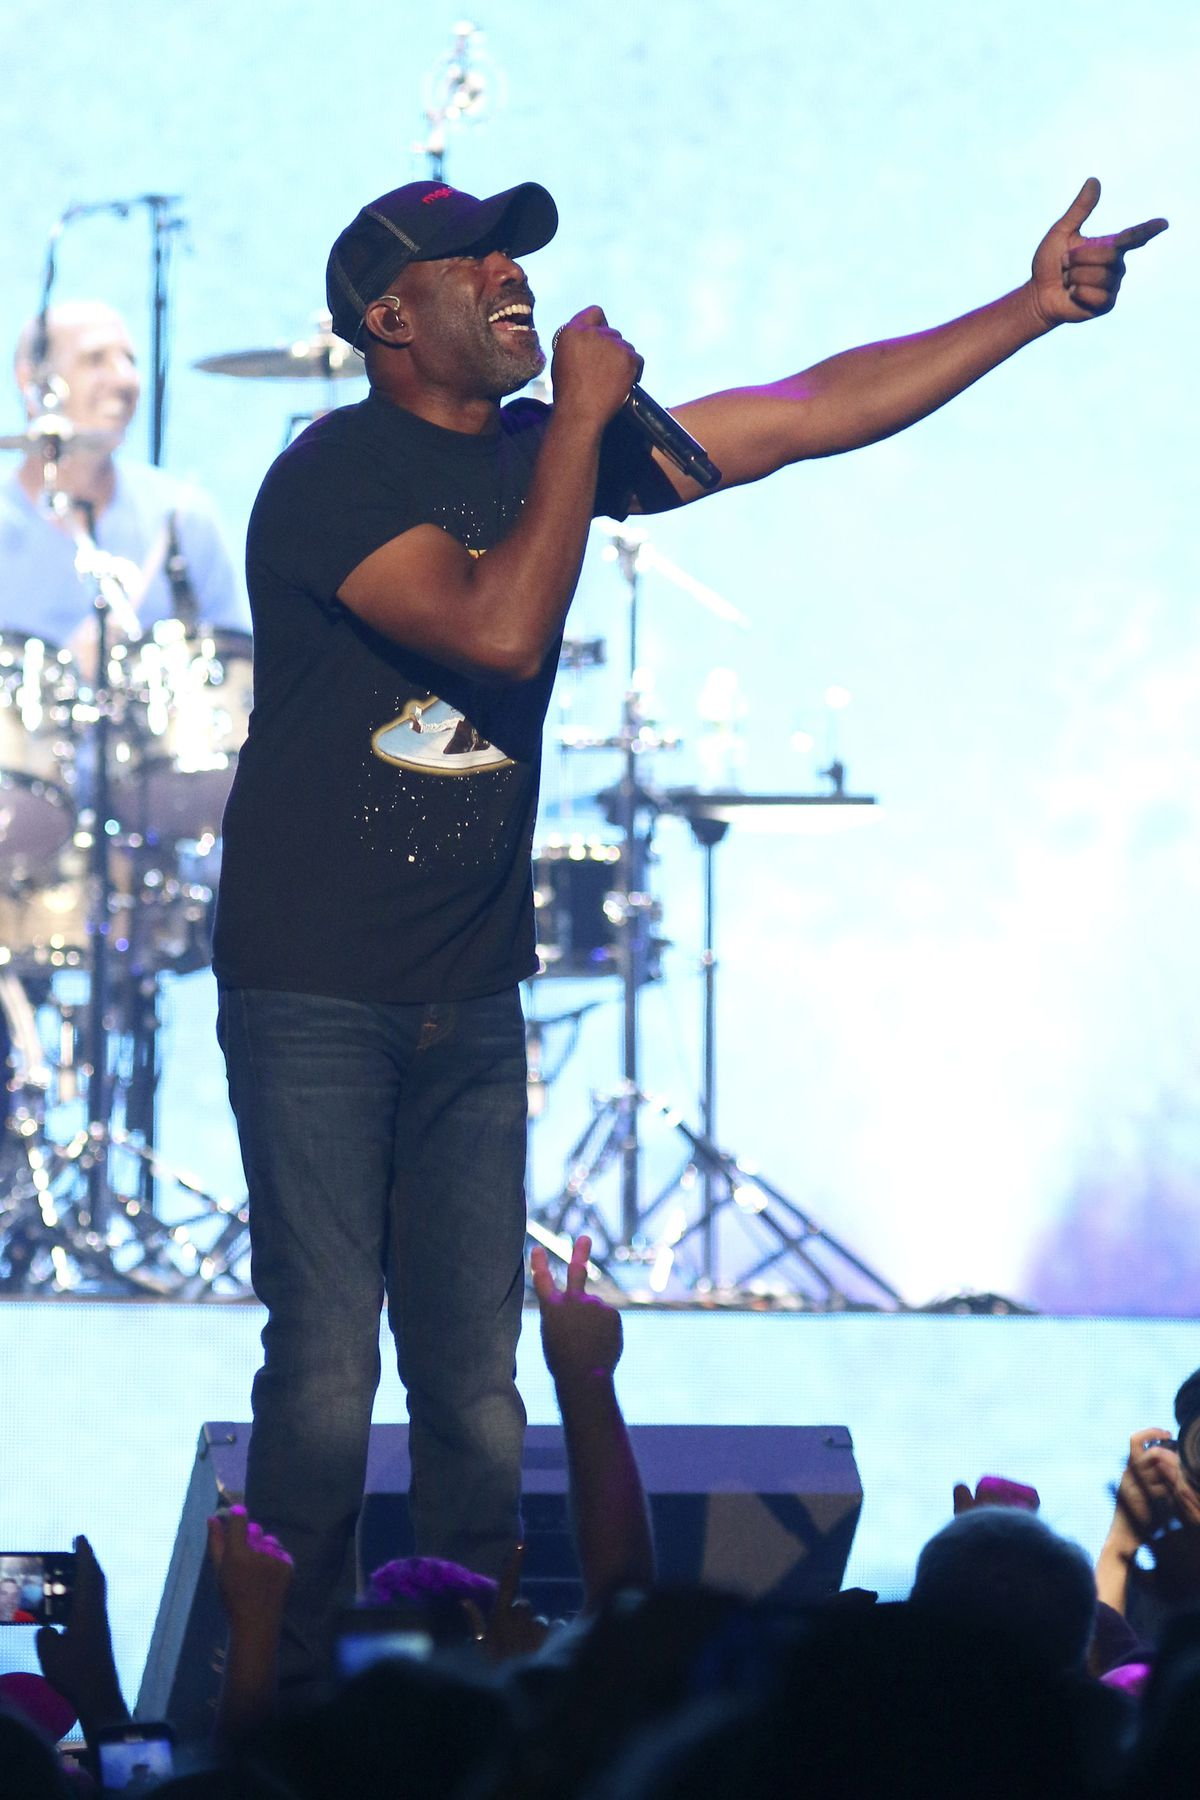 Darius Rucker of Hootie & the Blowfish performs at Madison Square Garden earlier this month.